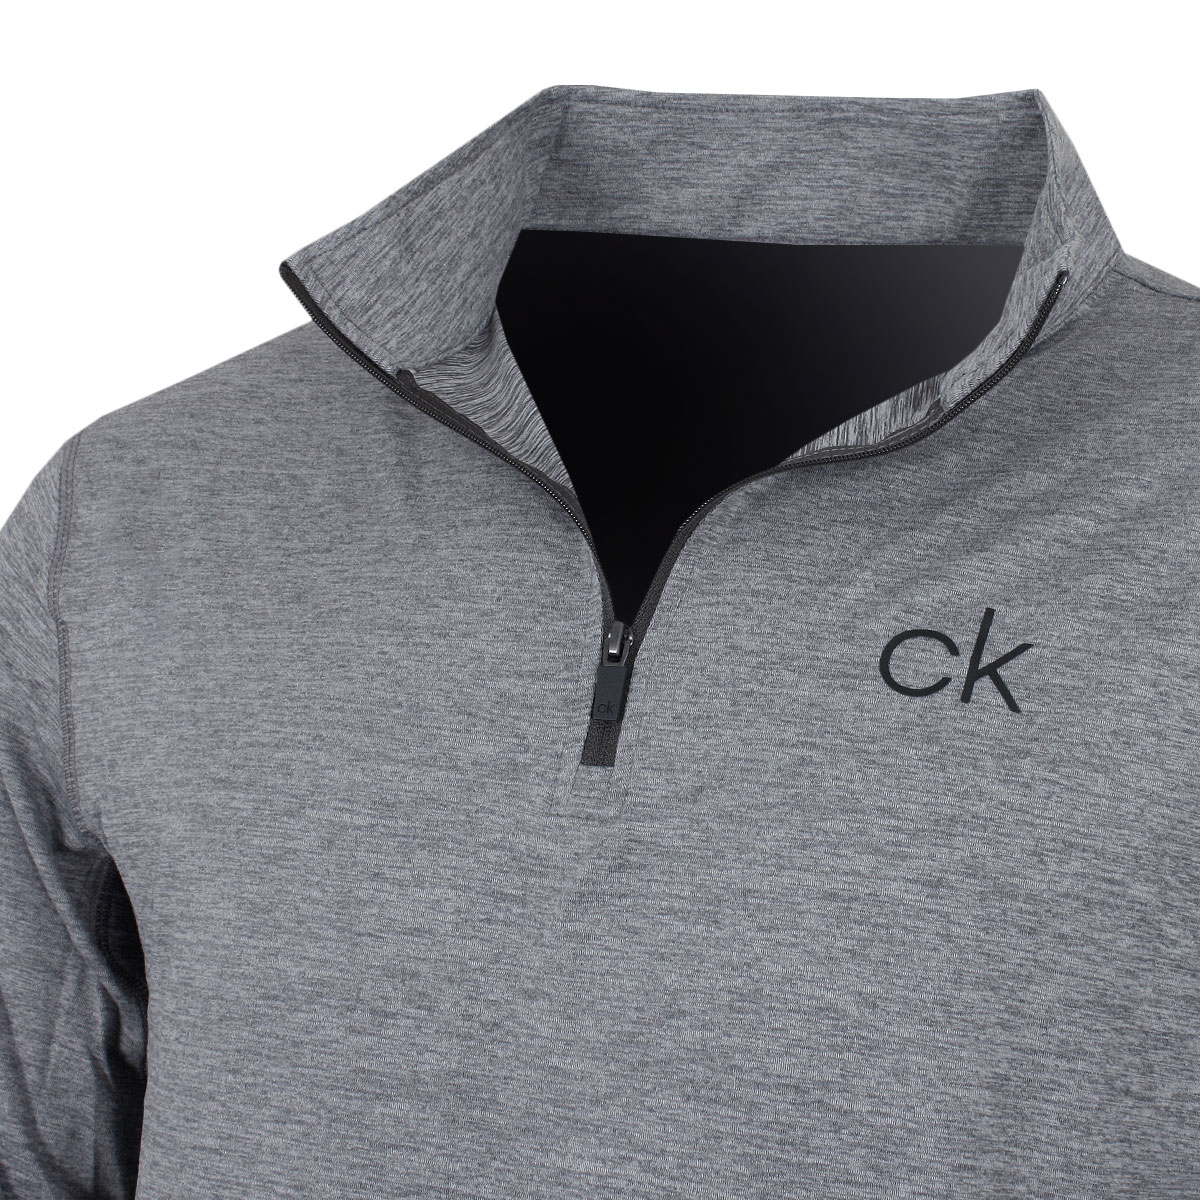 Calvin-Klein-Mens-Newport-HZ-LS-Breathable-Lightweight-Sweater-28-OFF-RRP thumbnail 13